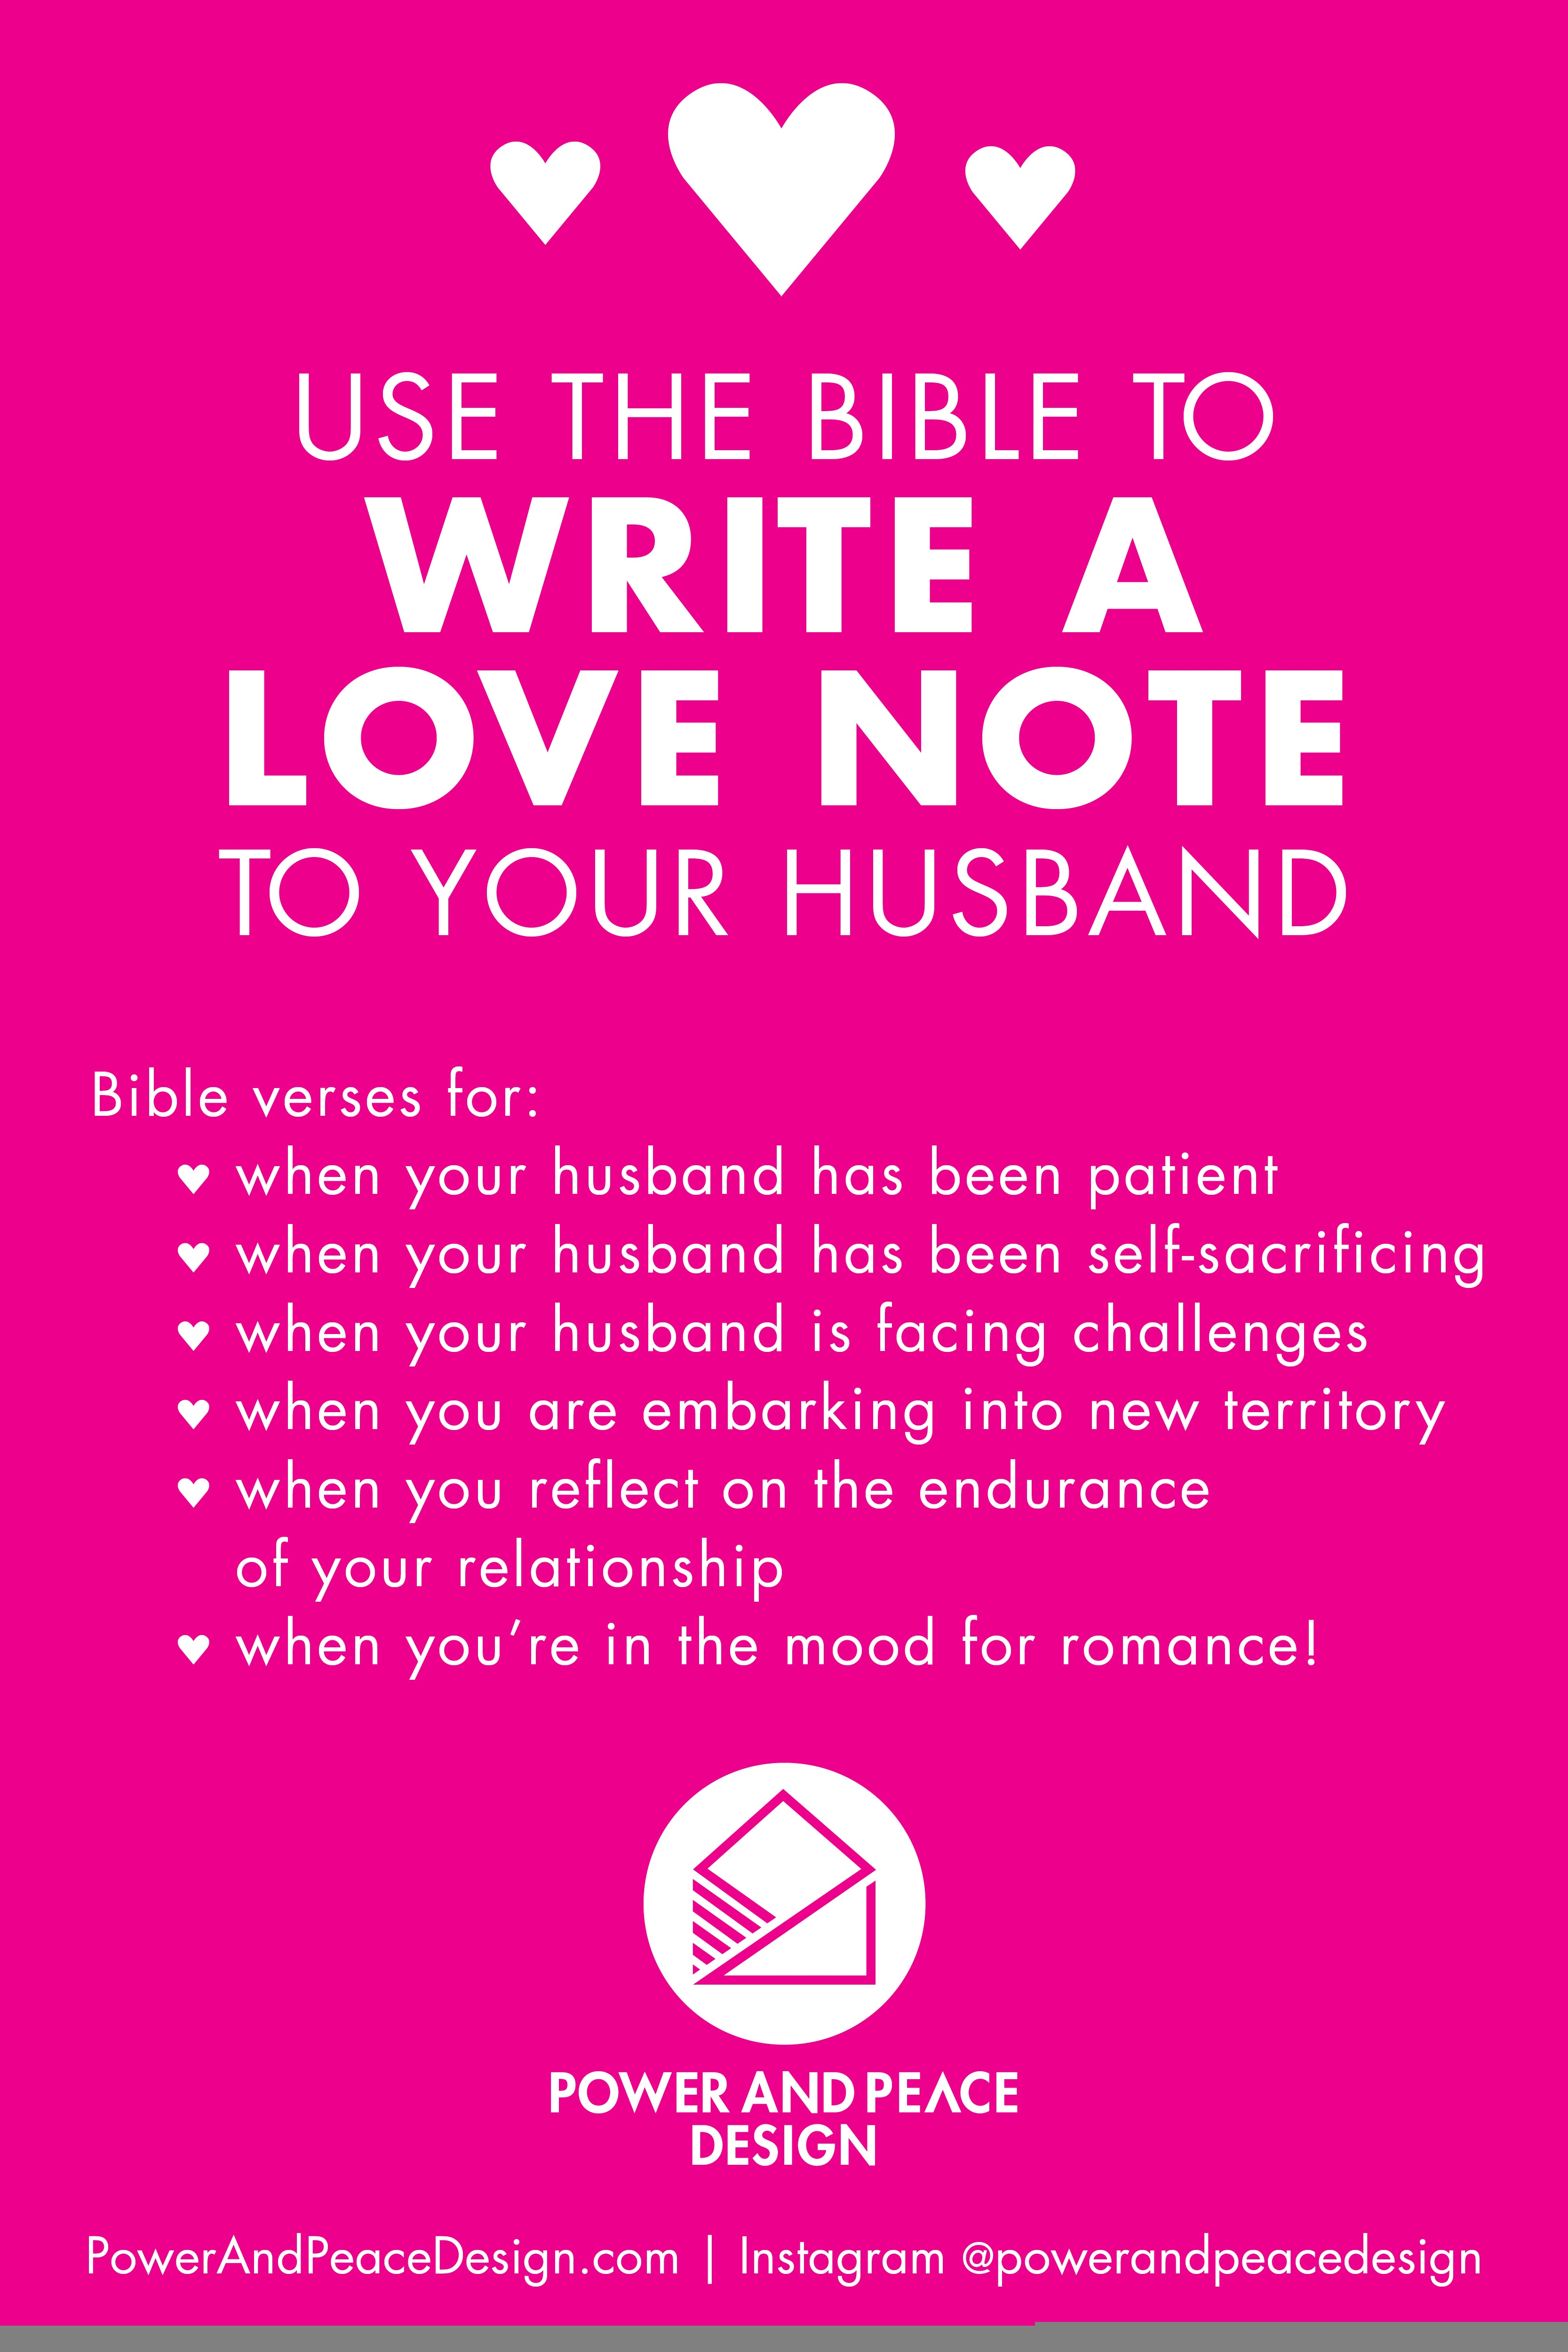 Use Scripture to write a love note to your husband